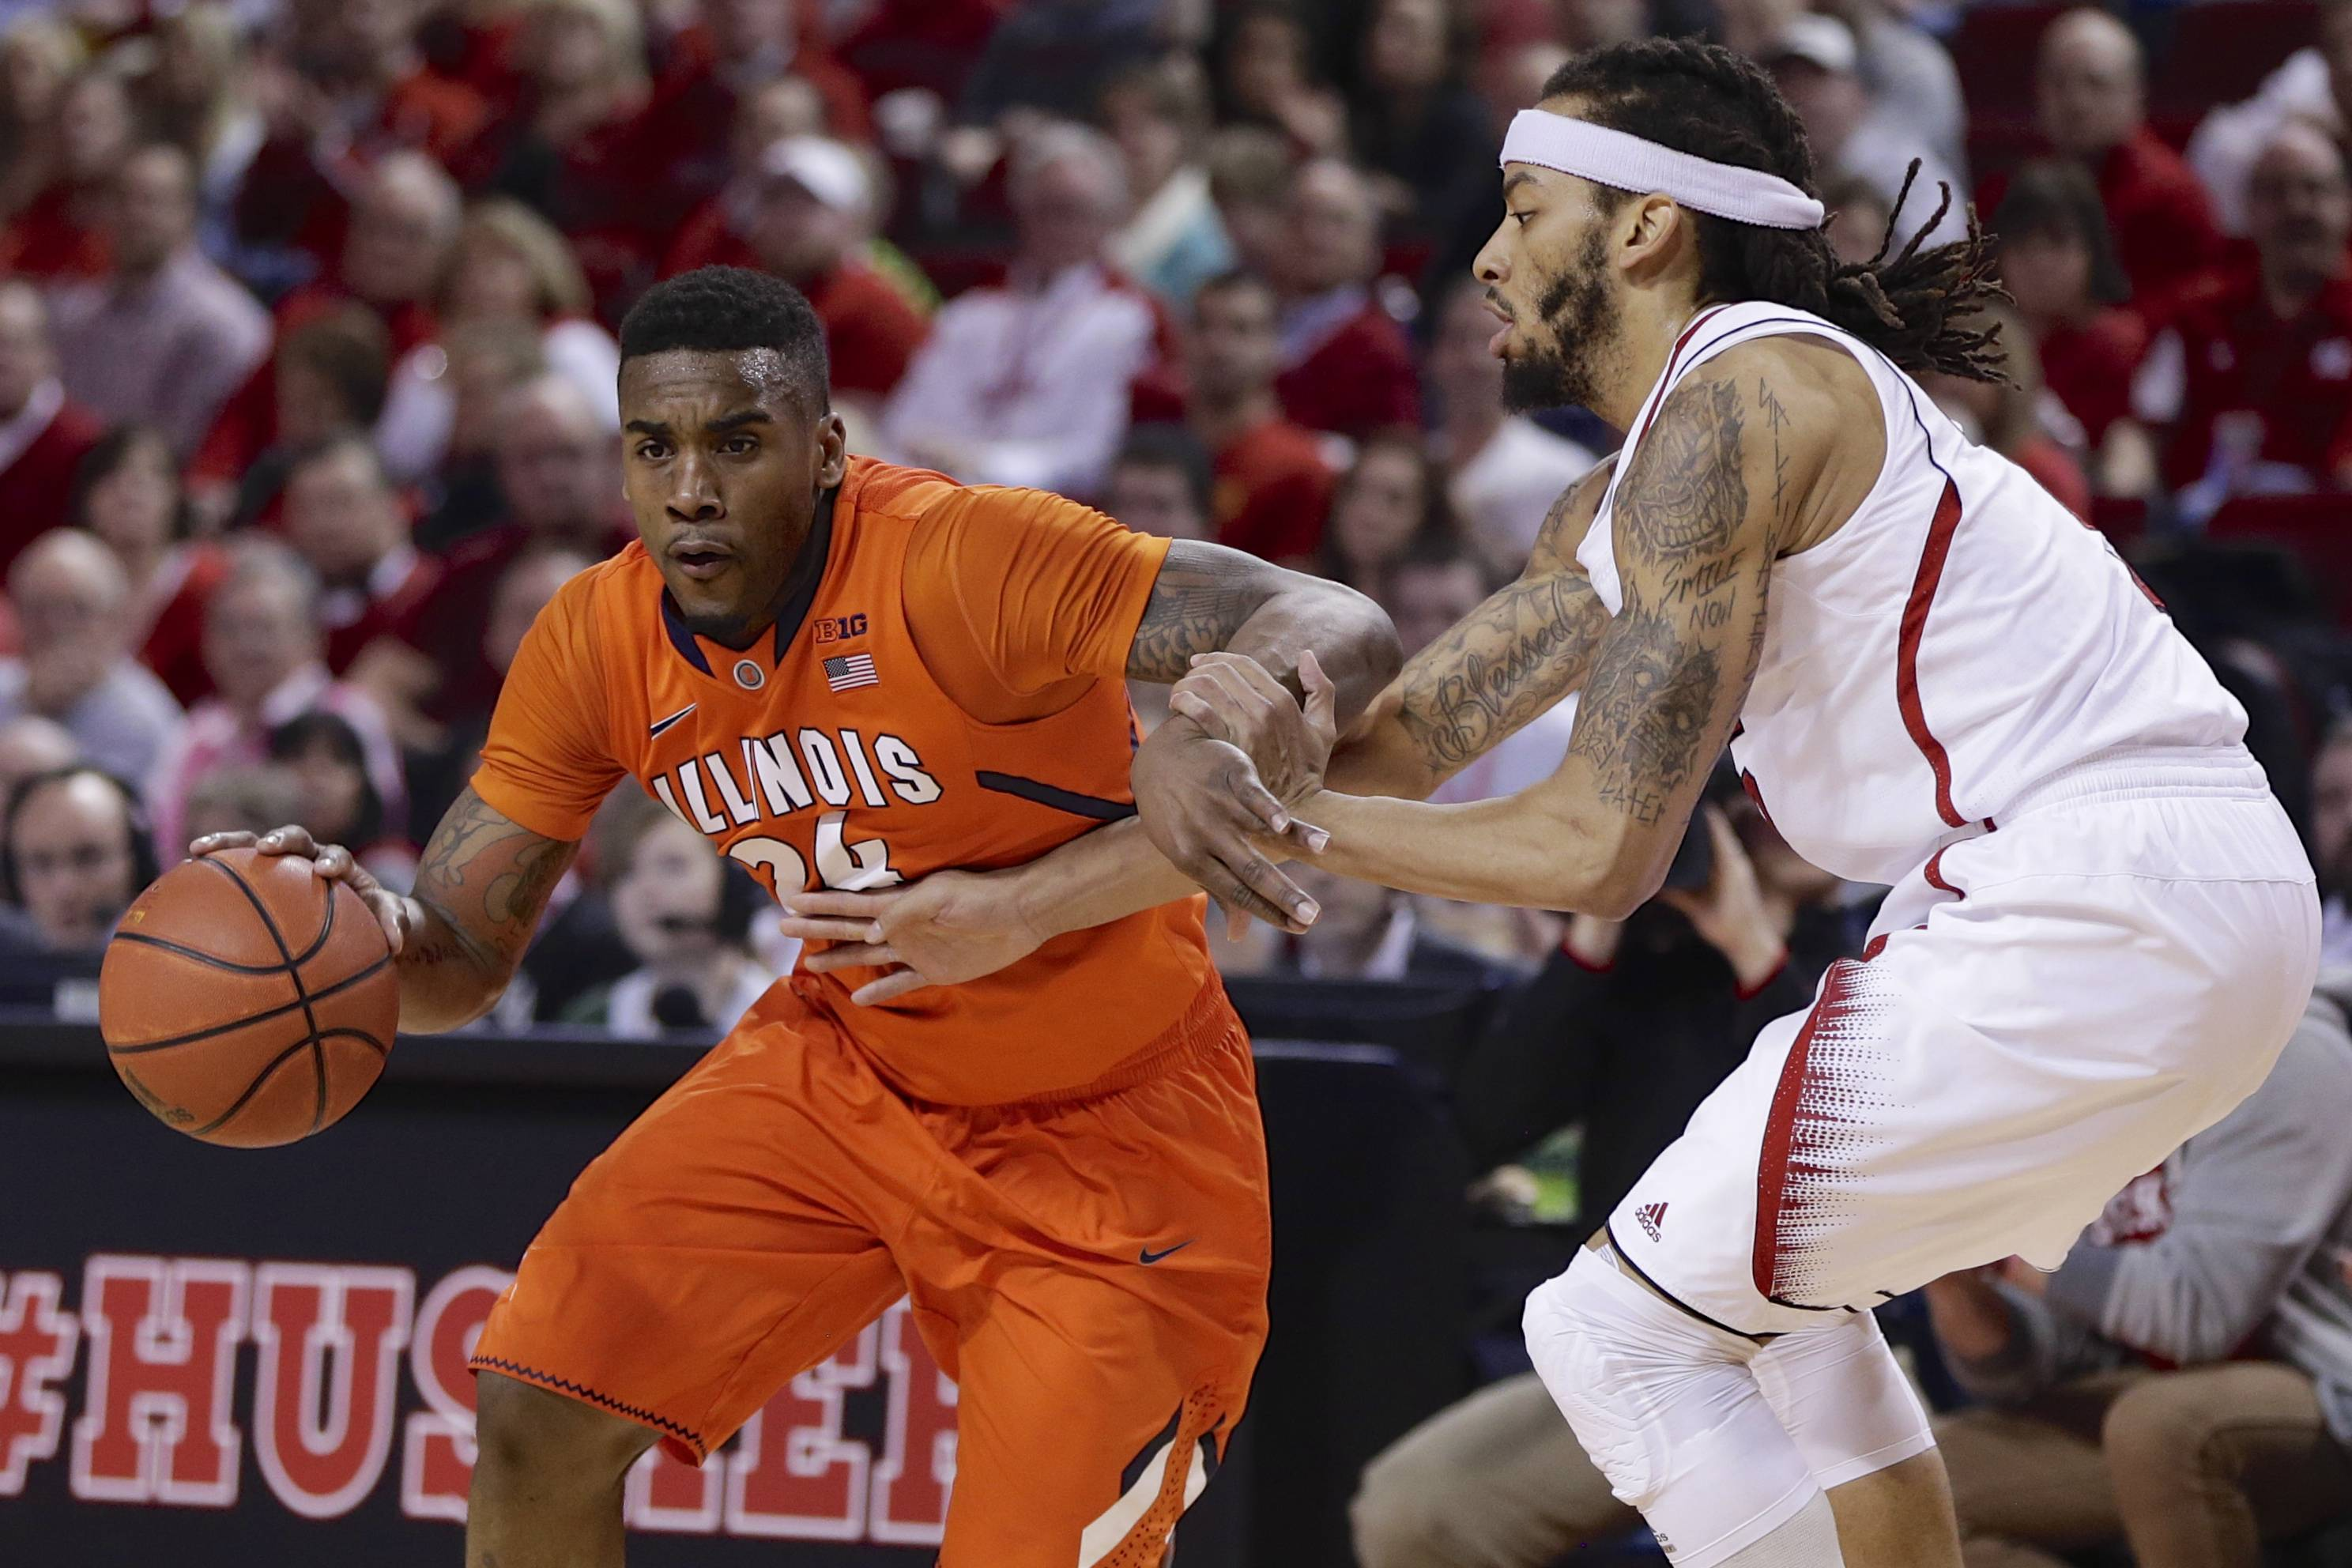 Nebraska's Terran Petteway, right, guards Illinois' Rayvonte Rice during Thursday night's game in Lincoln. The Huskers won 67-58.